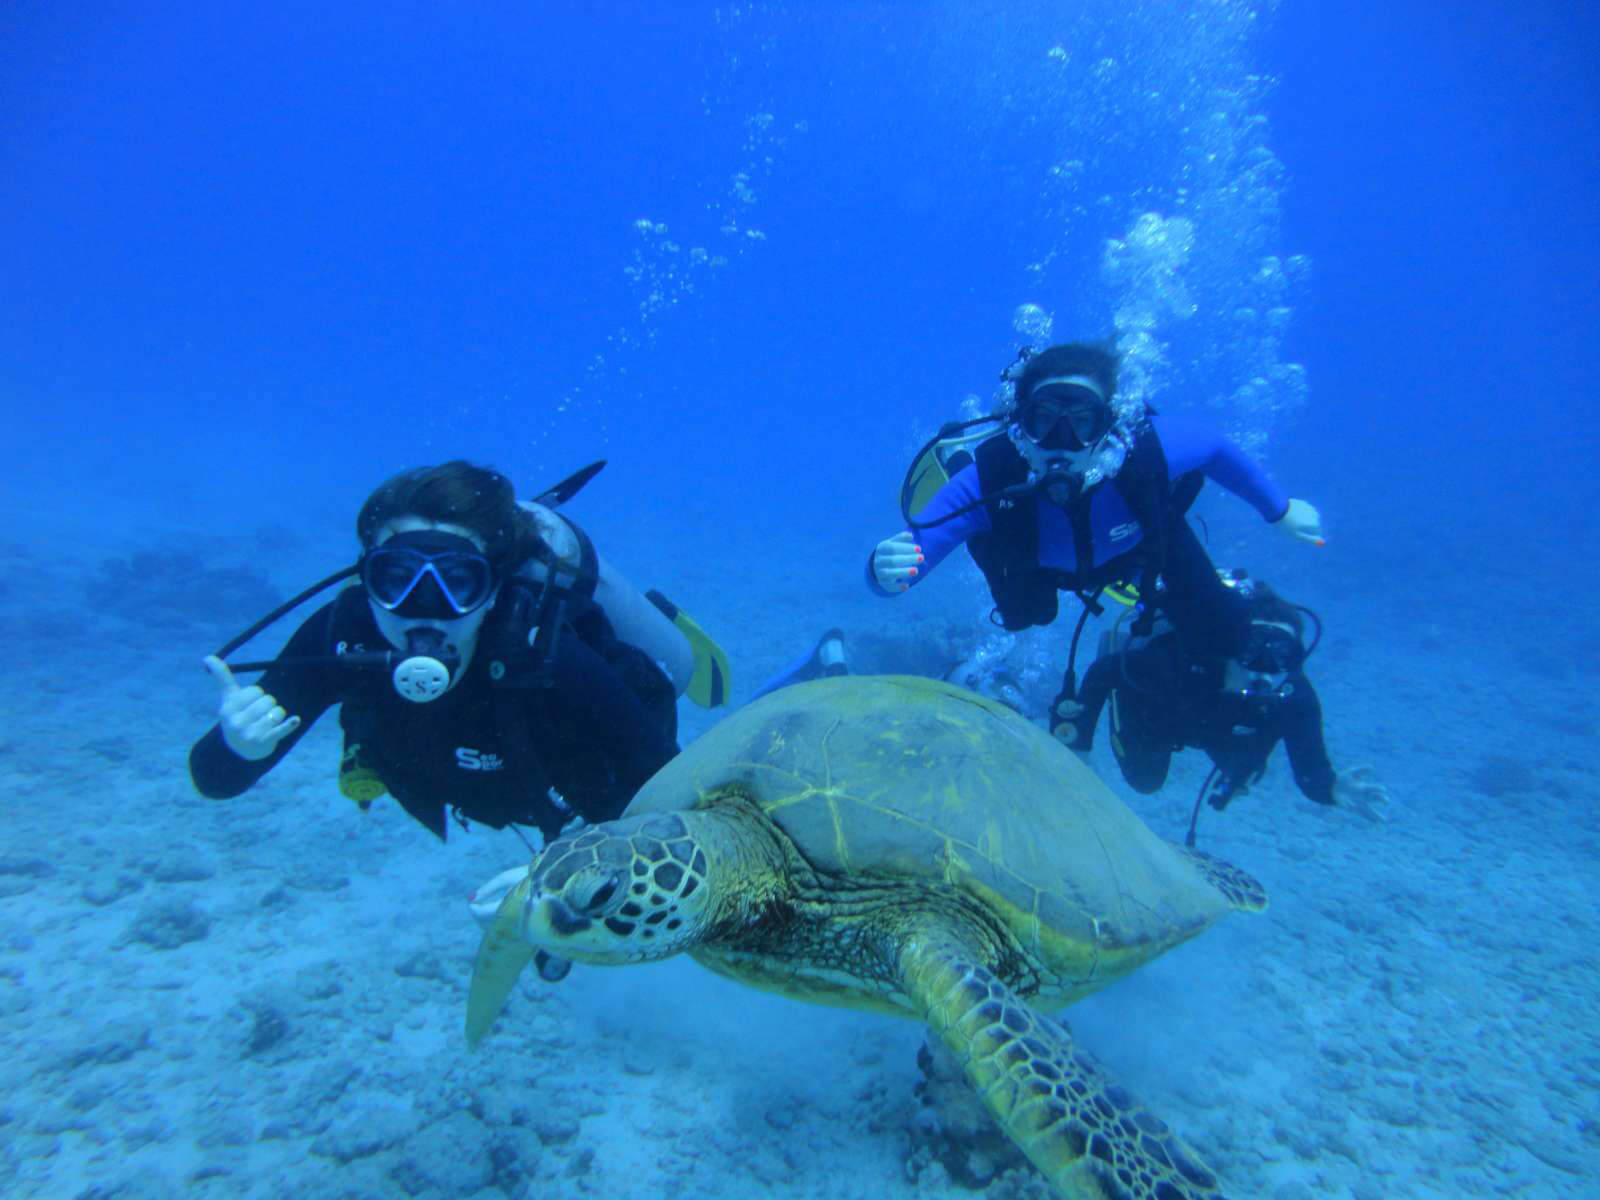 Hawaii scuba diving padi certification honolulu scuba lessons - Dive in scuba ...